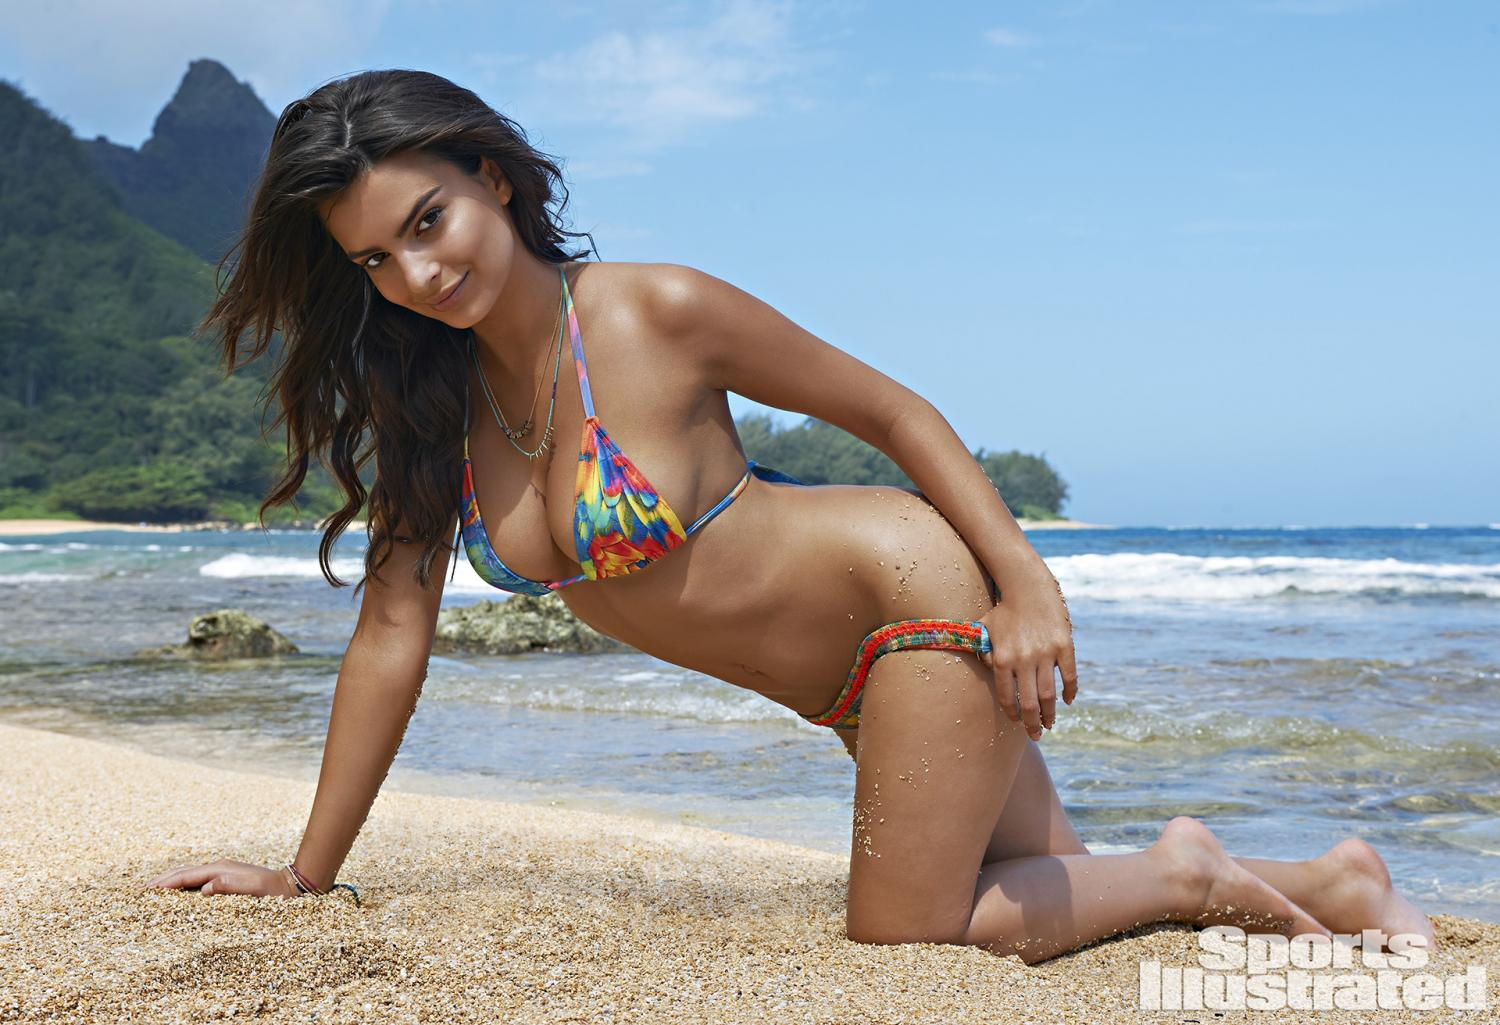 Emily Ratajkowski Sports illustrated 2